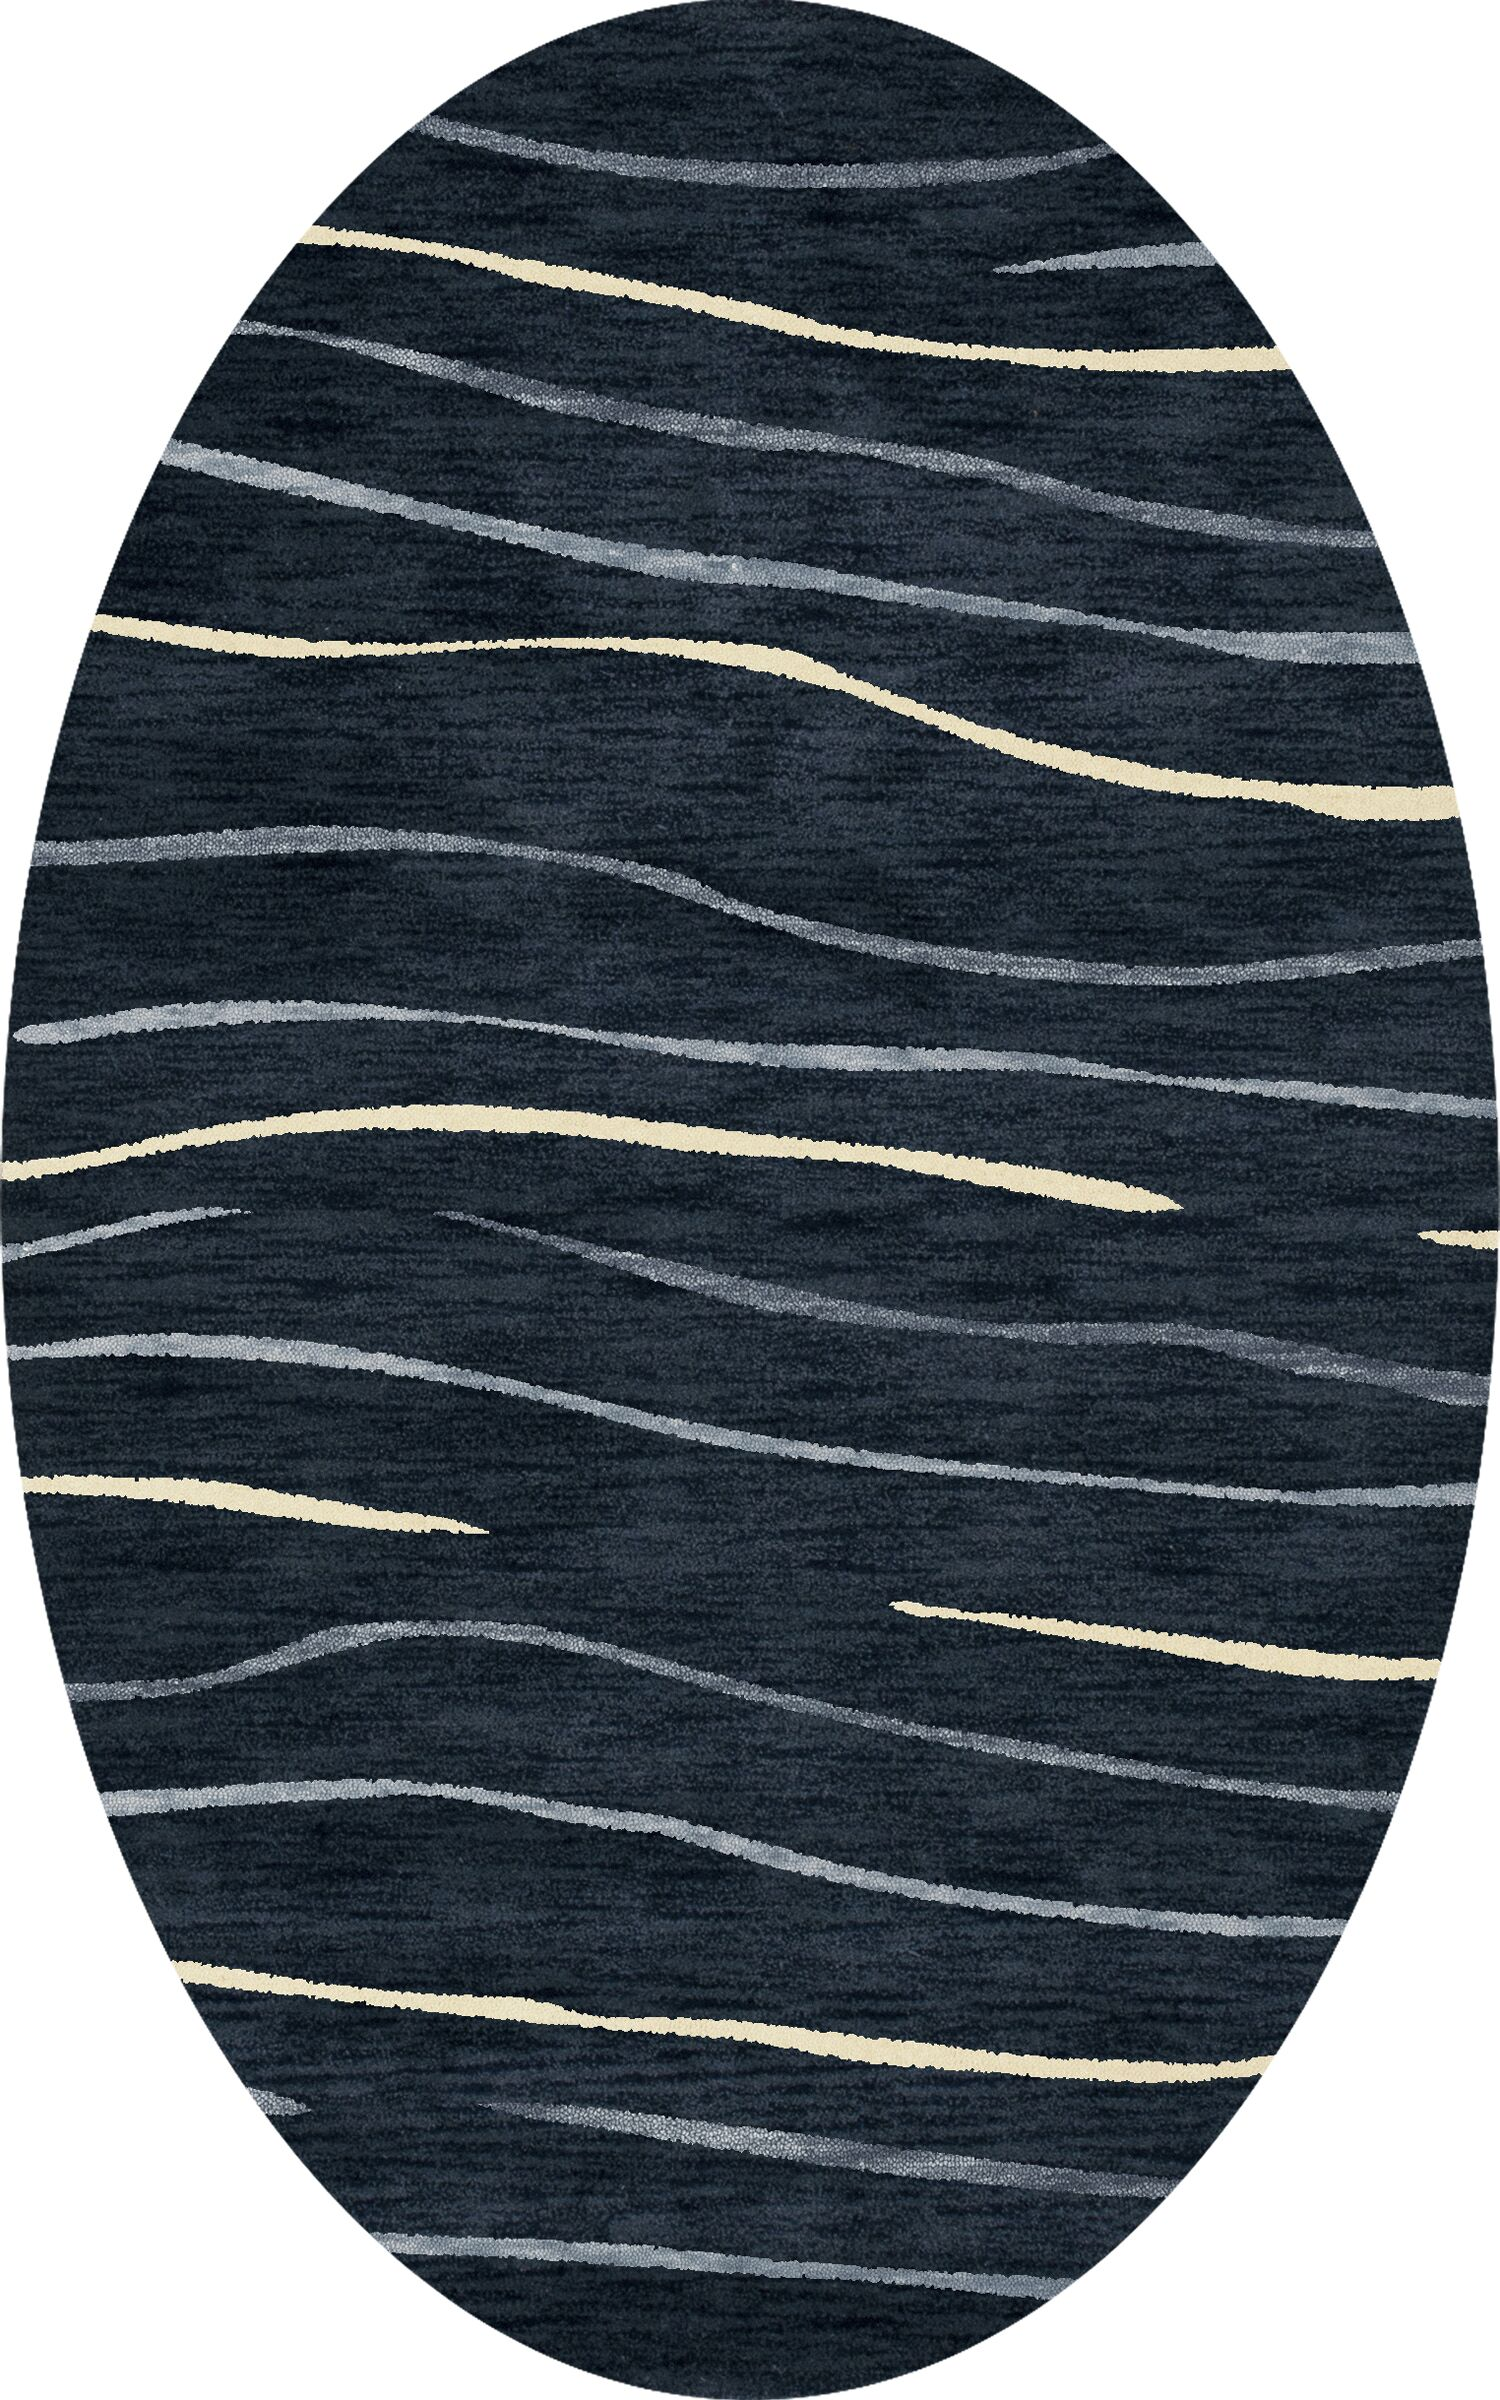 Bella Machine Woven Wool Blue Area Rug Rug Size: Oval 6' x 9'